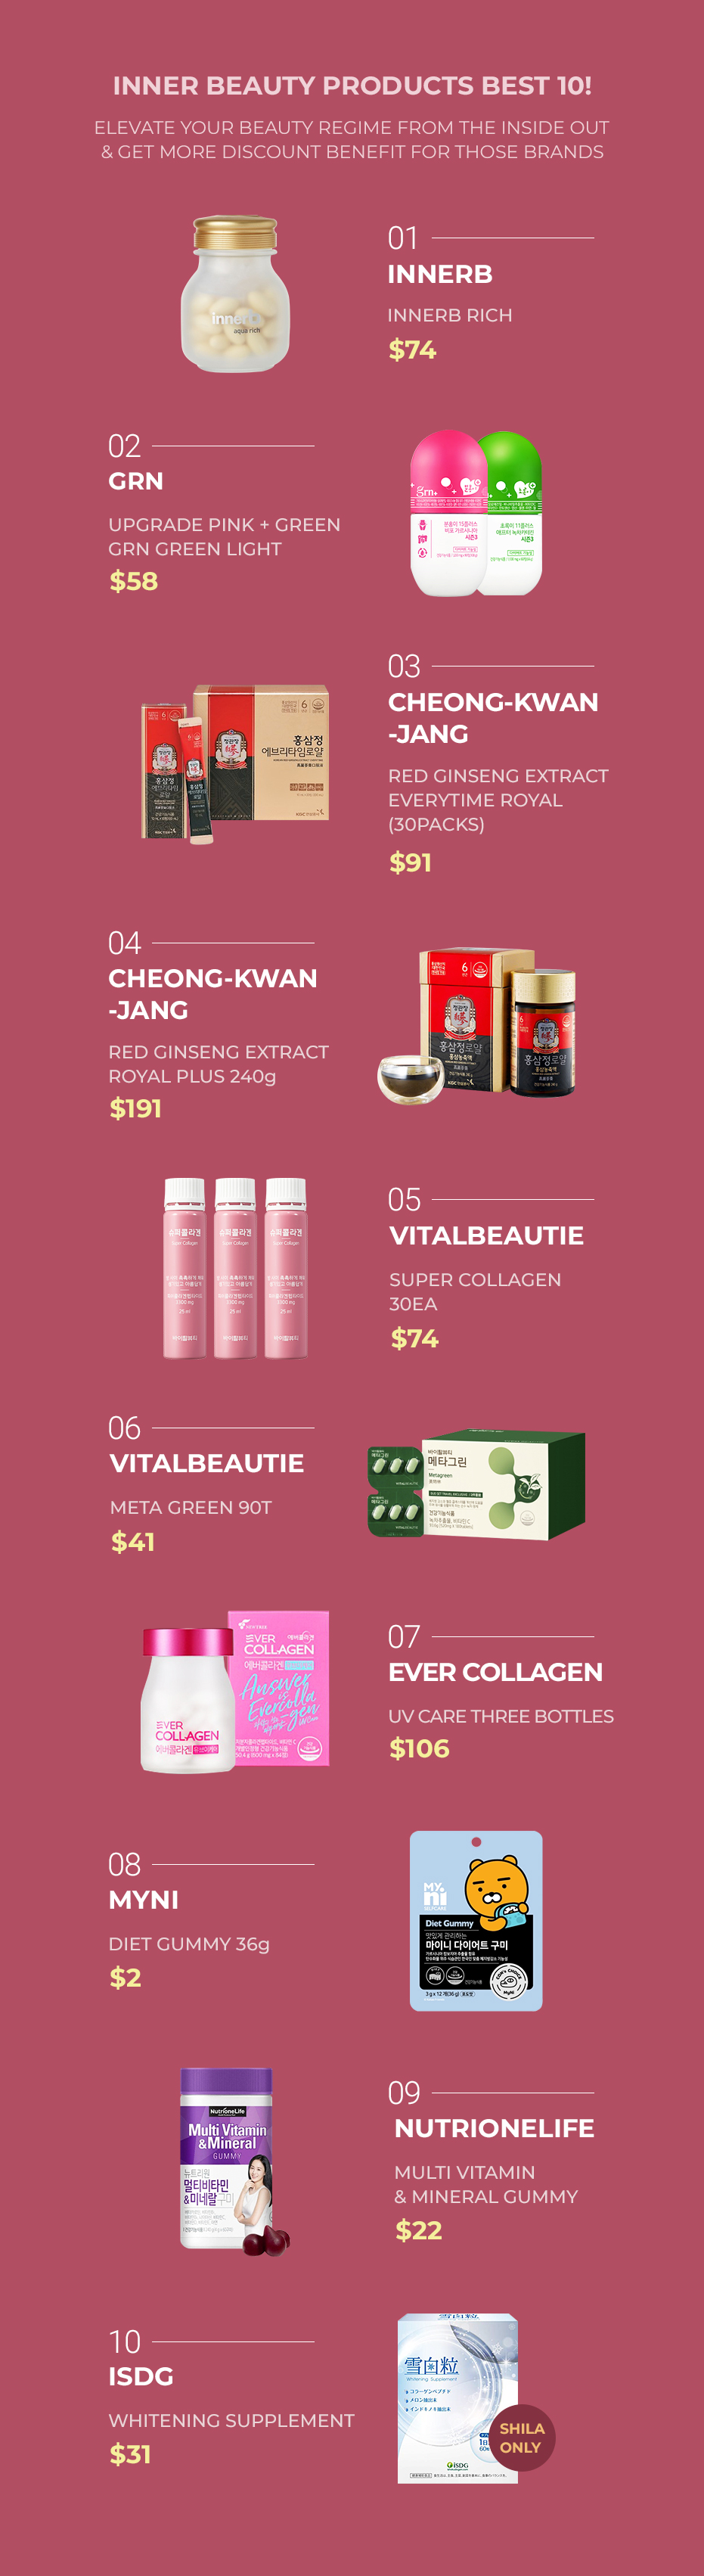 INNER BEAUTY PRODUCTS BEST 10!